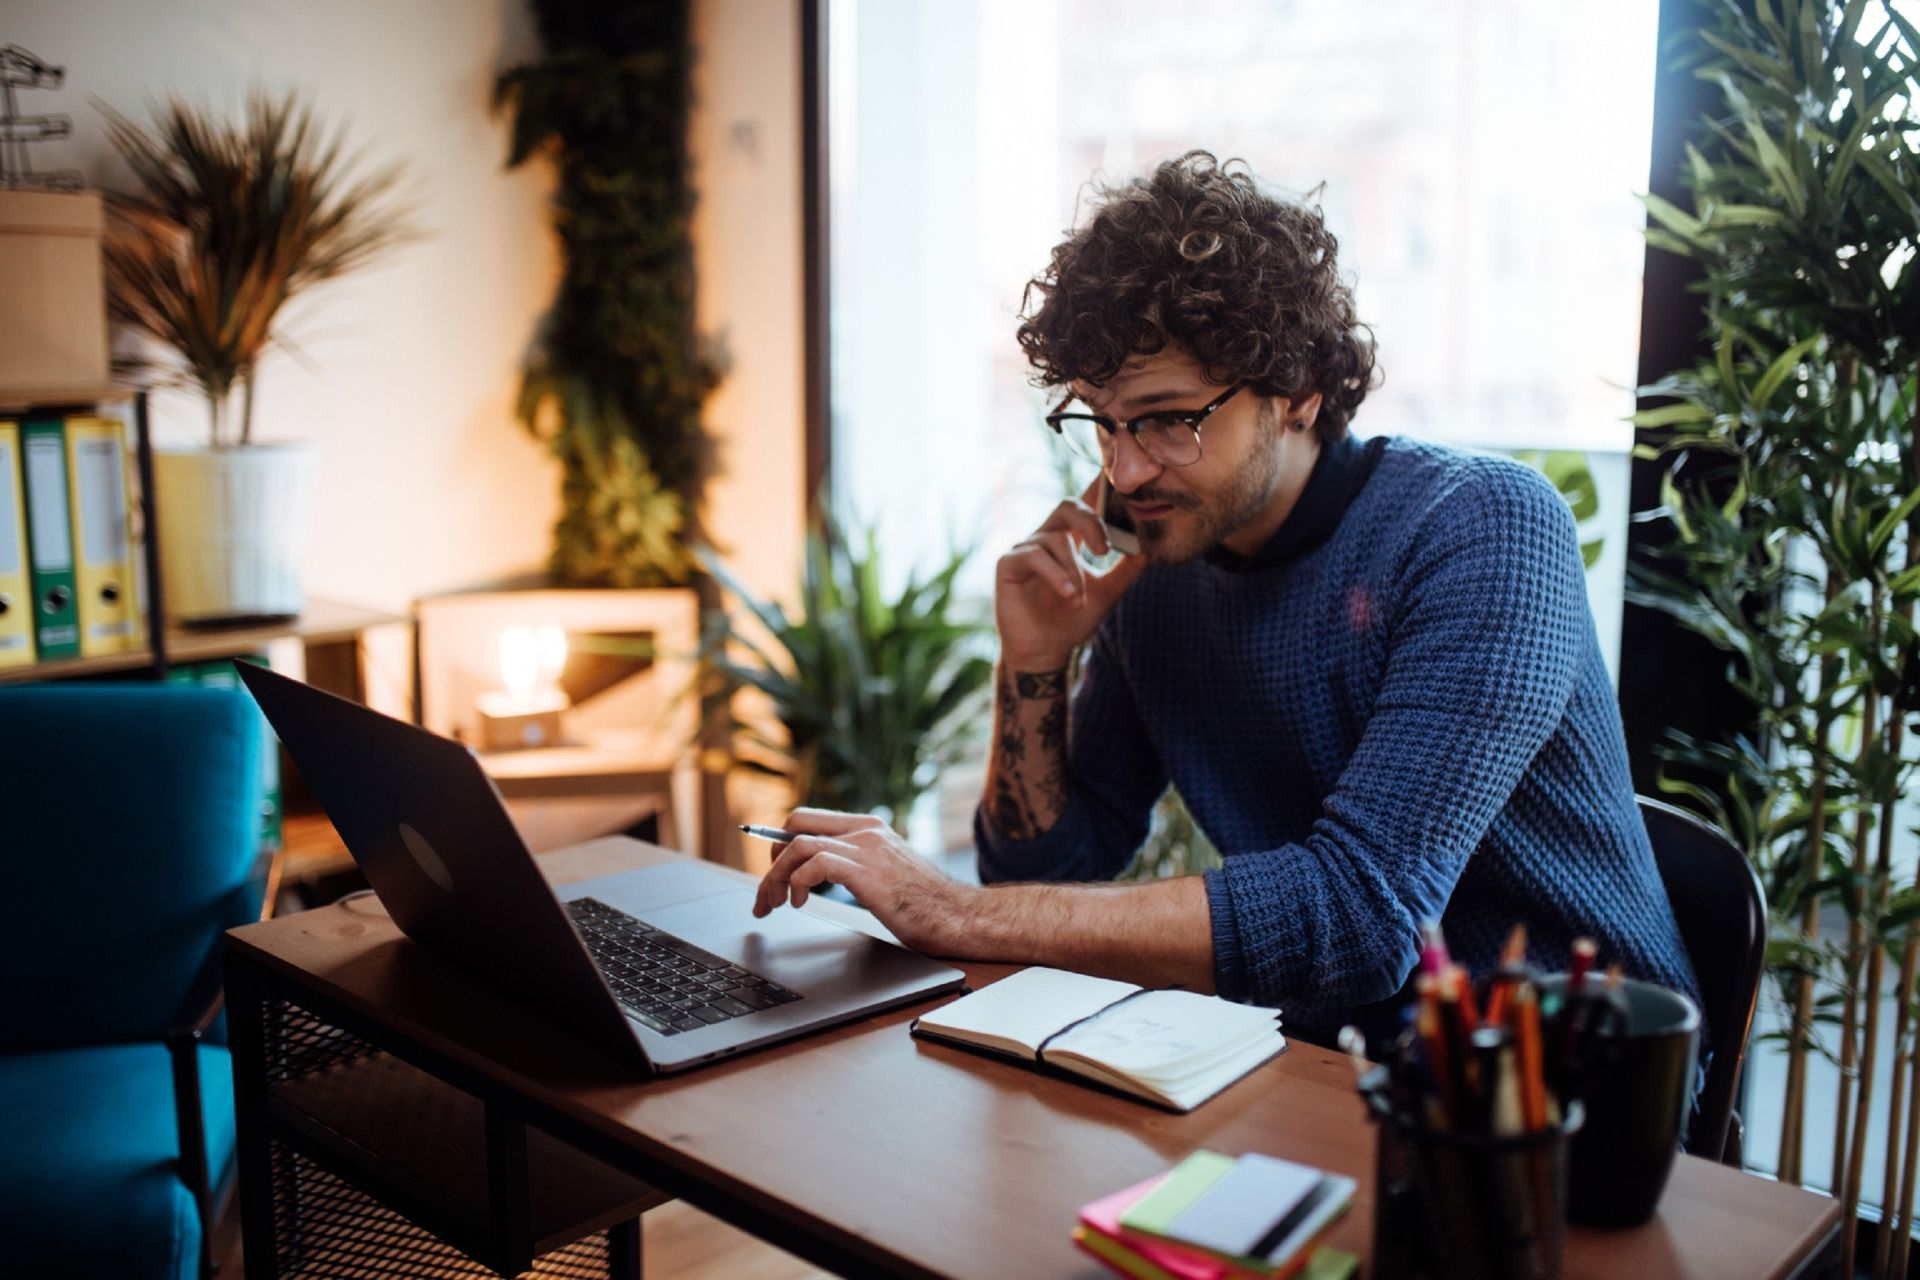 French National Library, the BnF, is allowing home office workers to brighten their video conferences with artistic desktop wallpapers.  © Anchiy / IStock.com